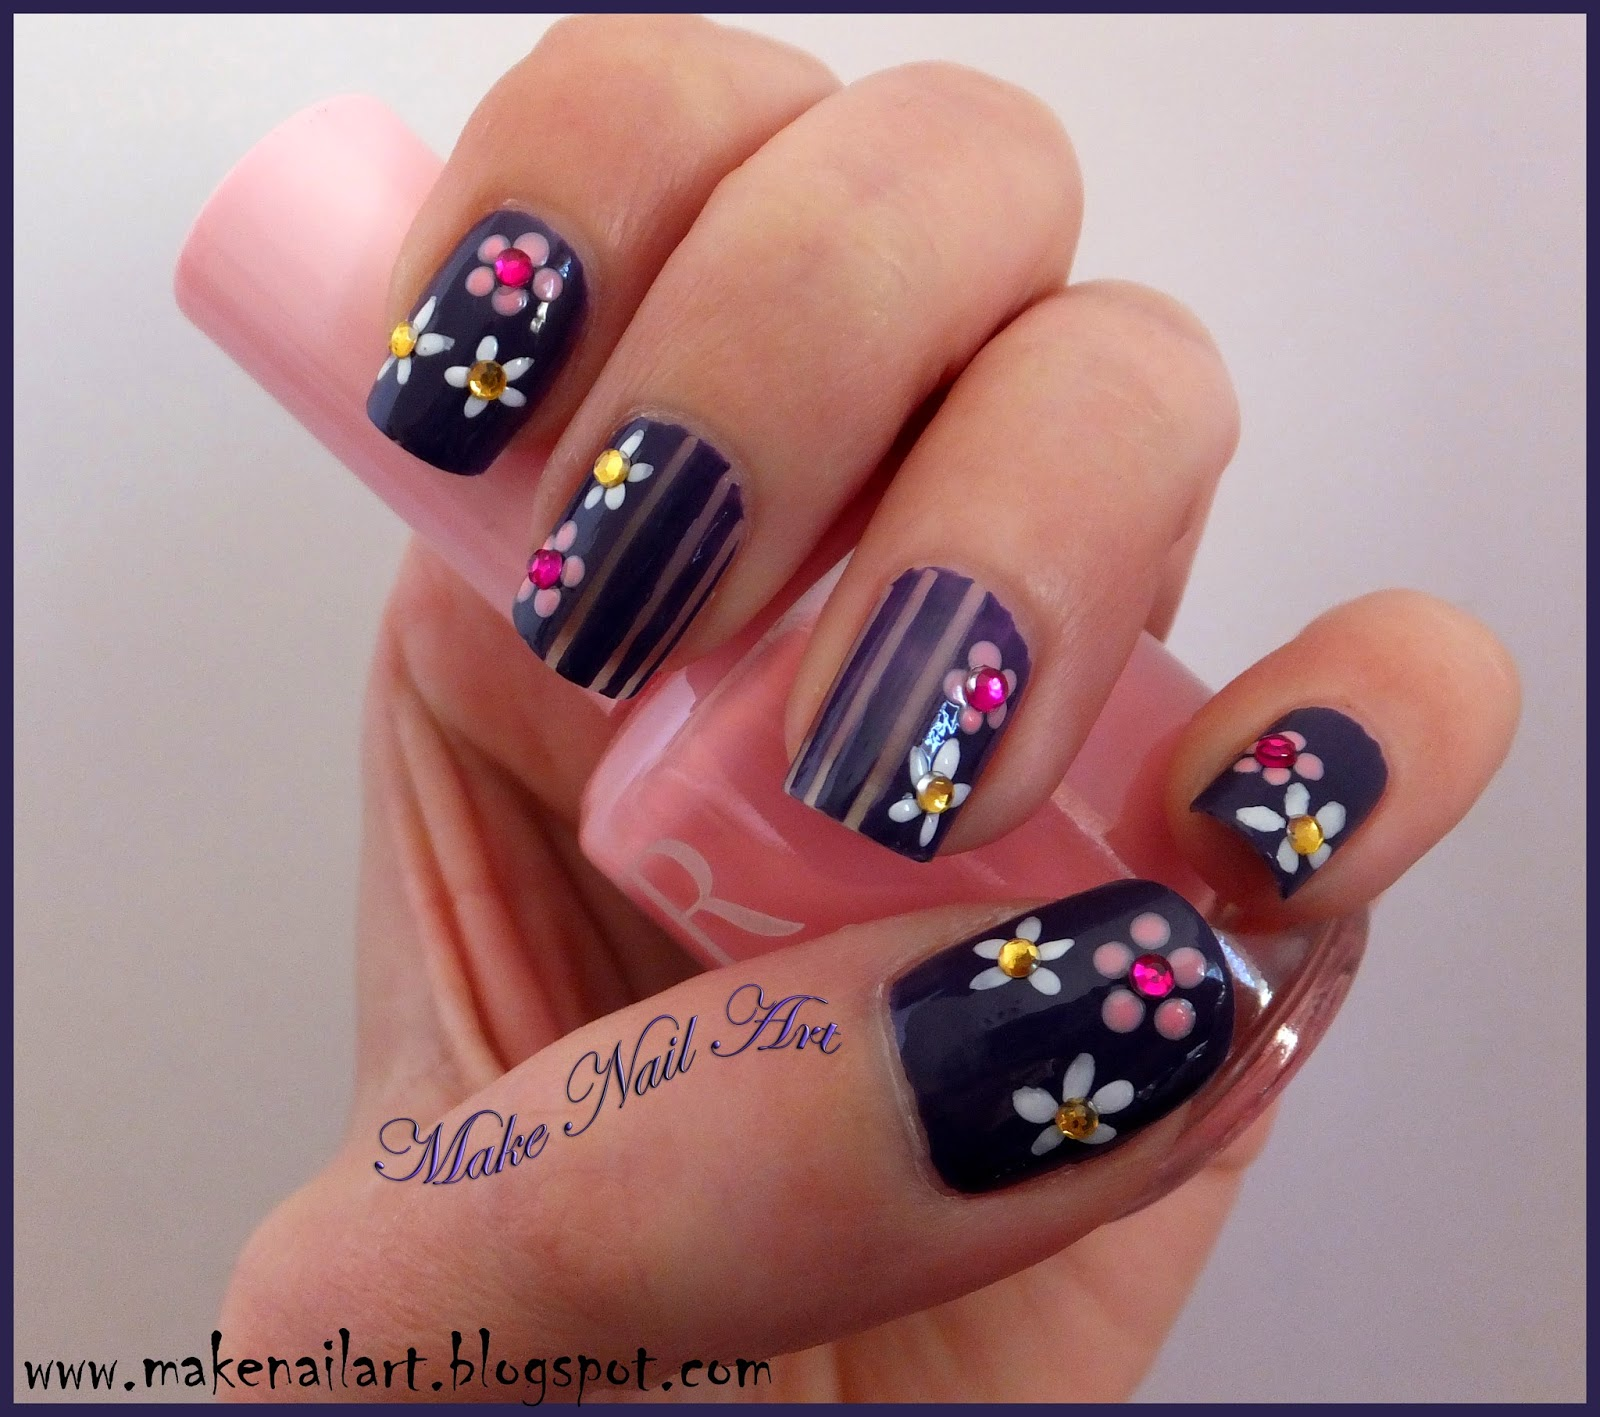 Make nail art easy flower nail design for spring nail art tutorial you can use your favourite colours to create this cute and easy flower nail design perfect for spring and summer mightylinksfo